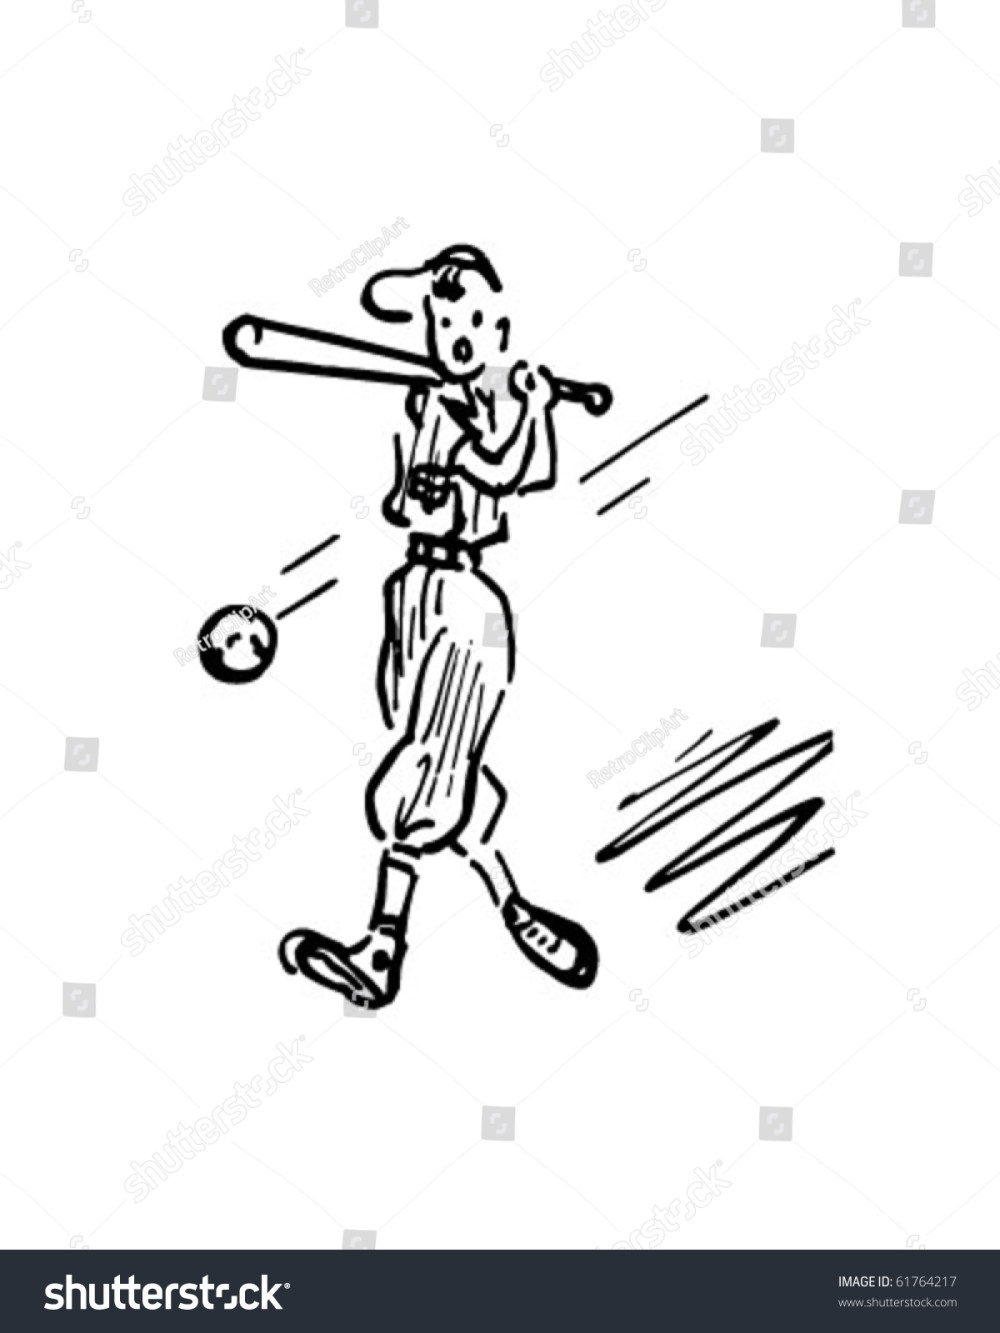 medium resolution of baseball batter retro clip art